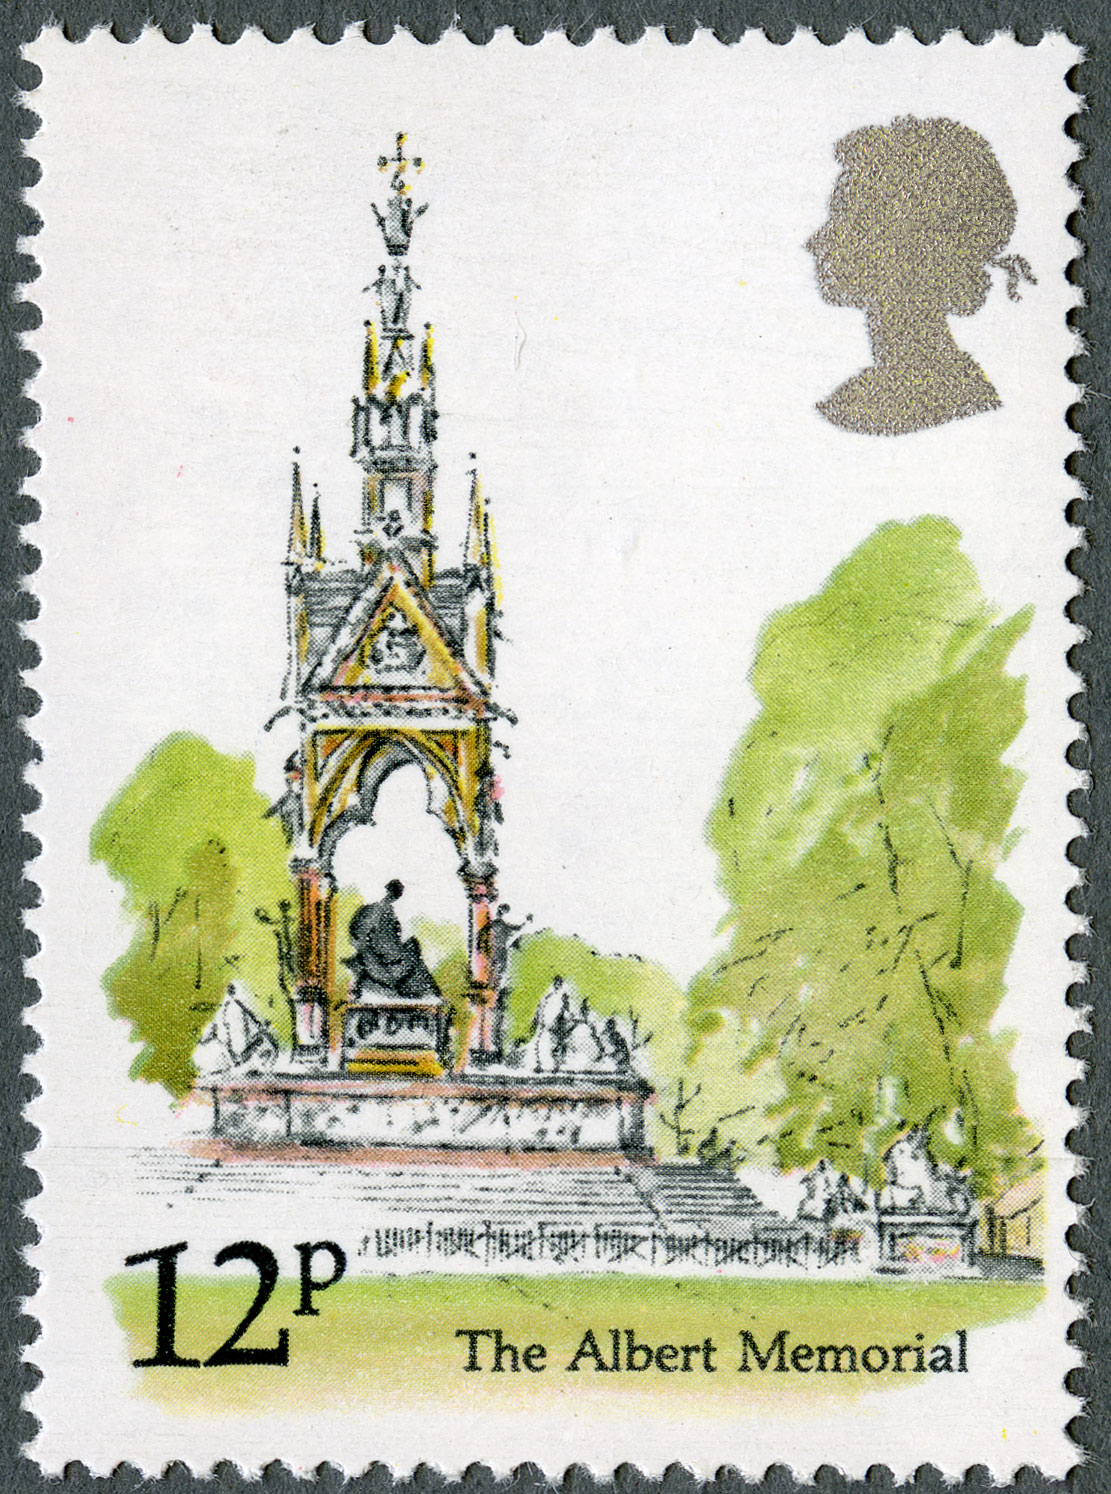 The stamp features a watercolour of the Prince Albert memorial in Kensignton Gardens.